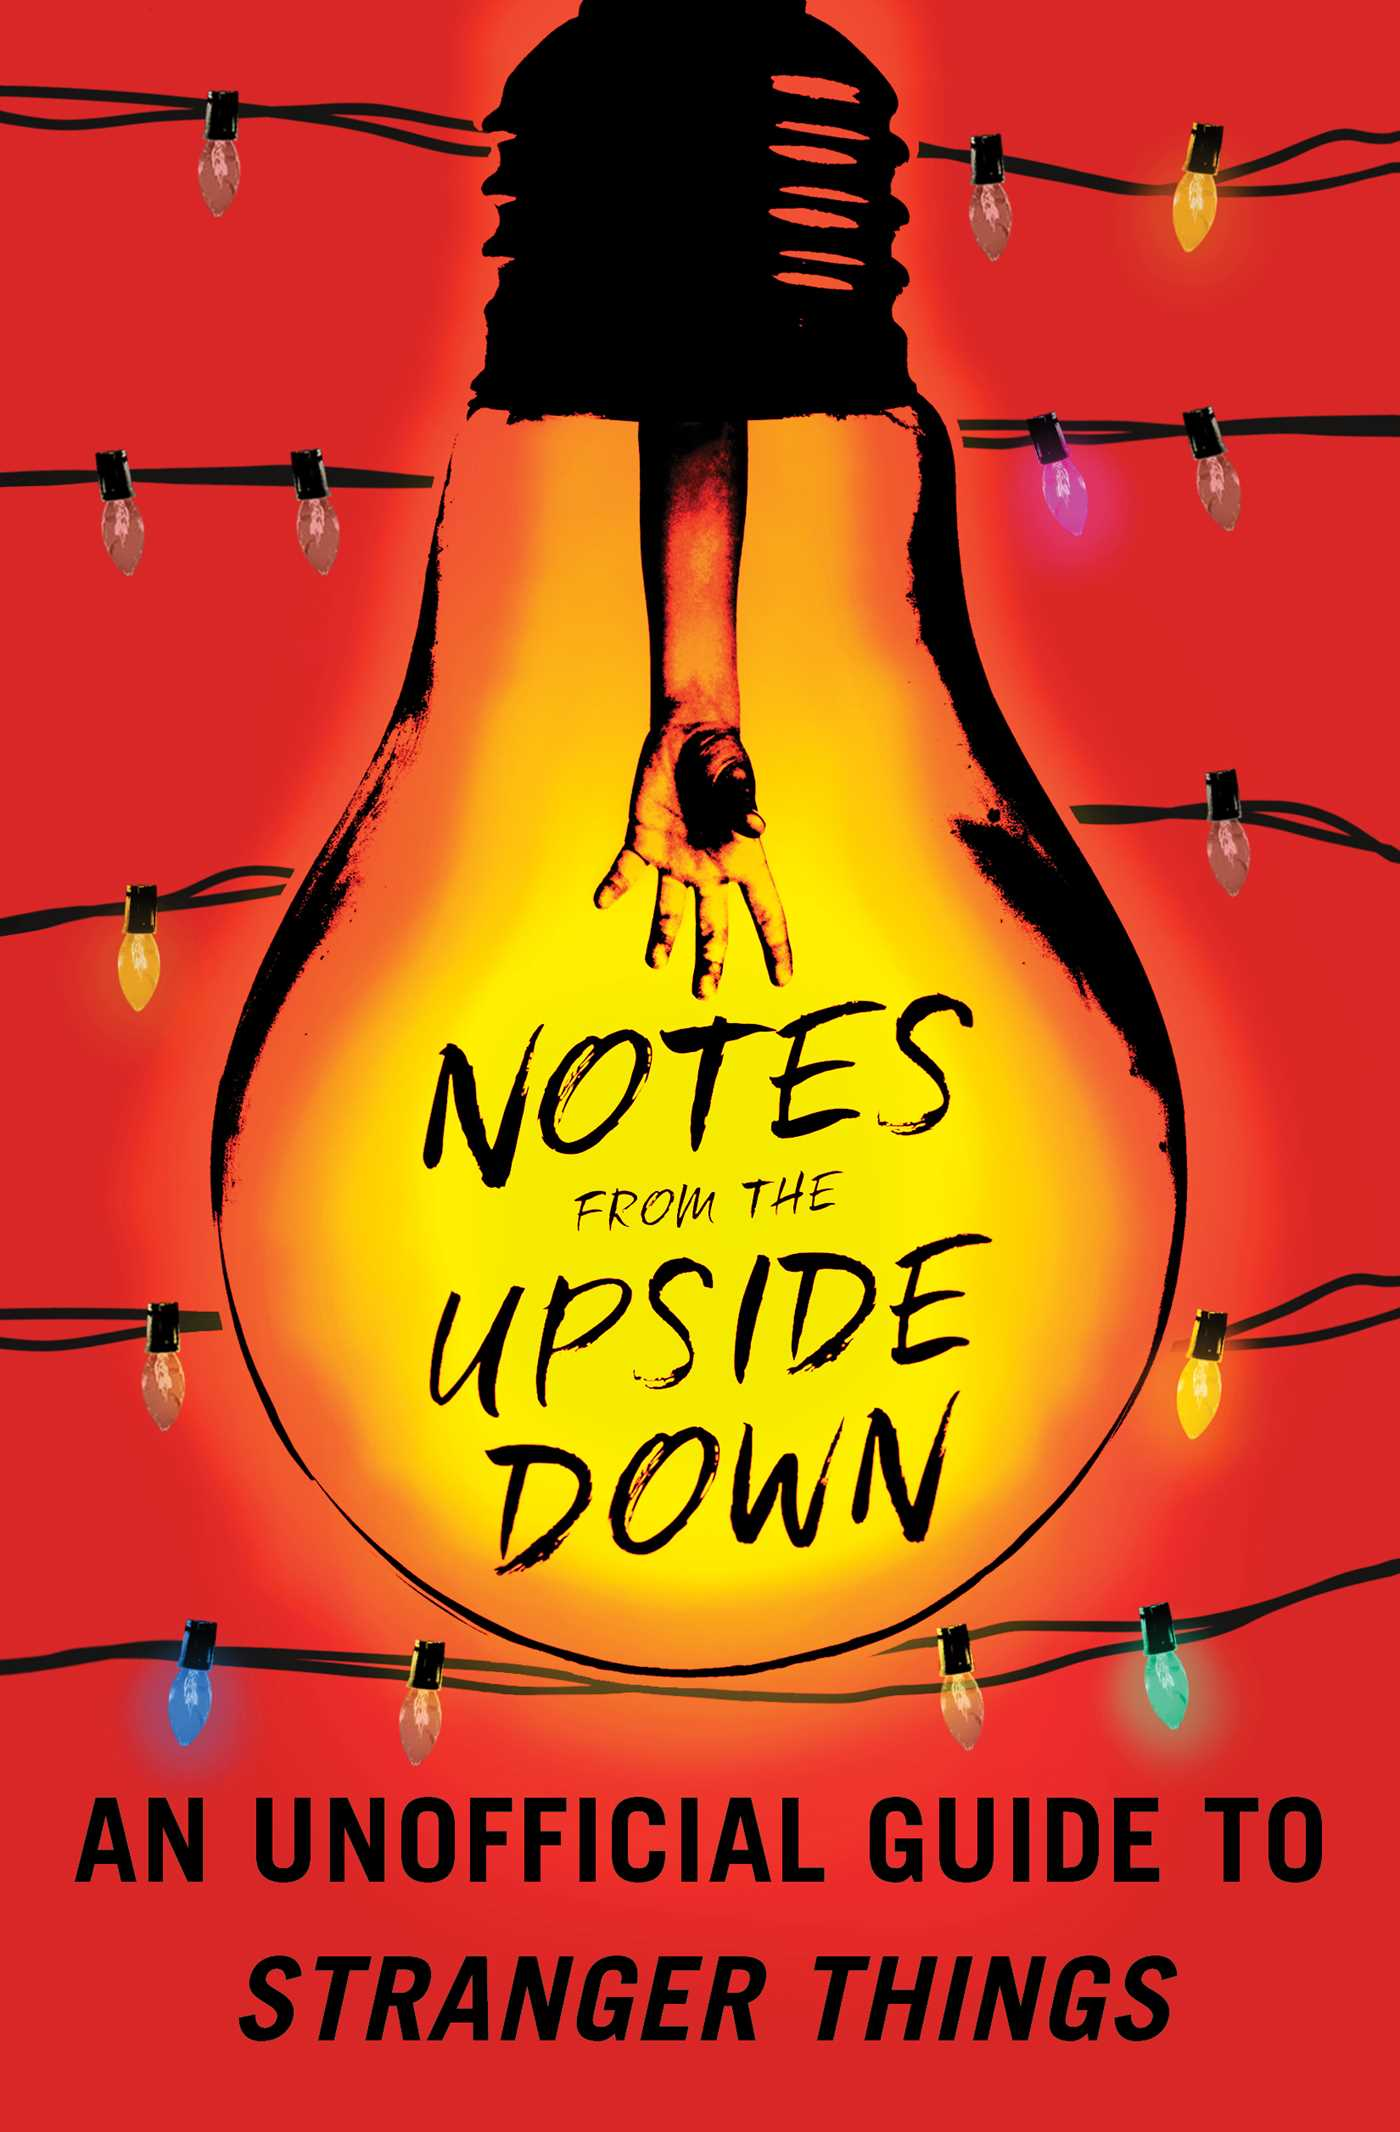 Notes from the upside down 9781501178047 hr